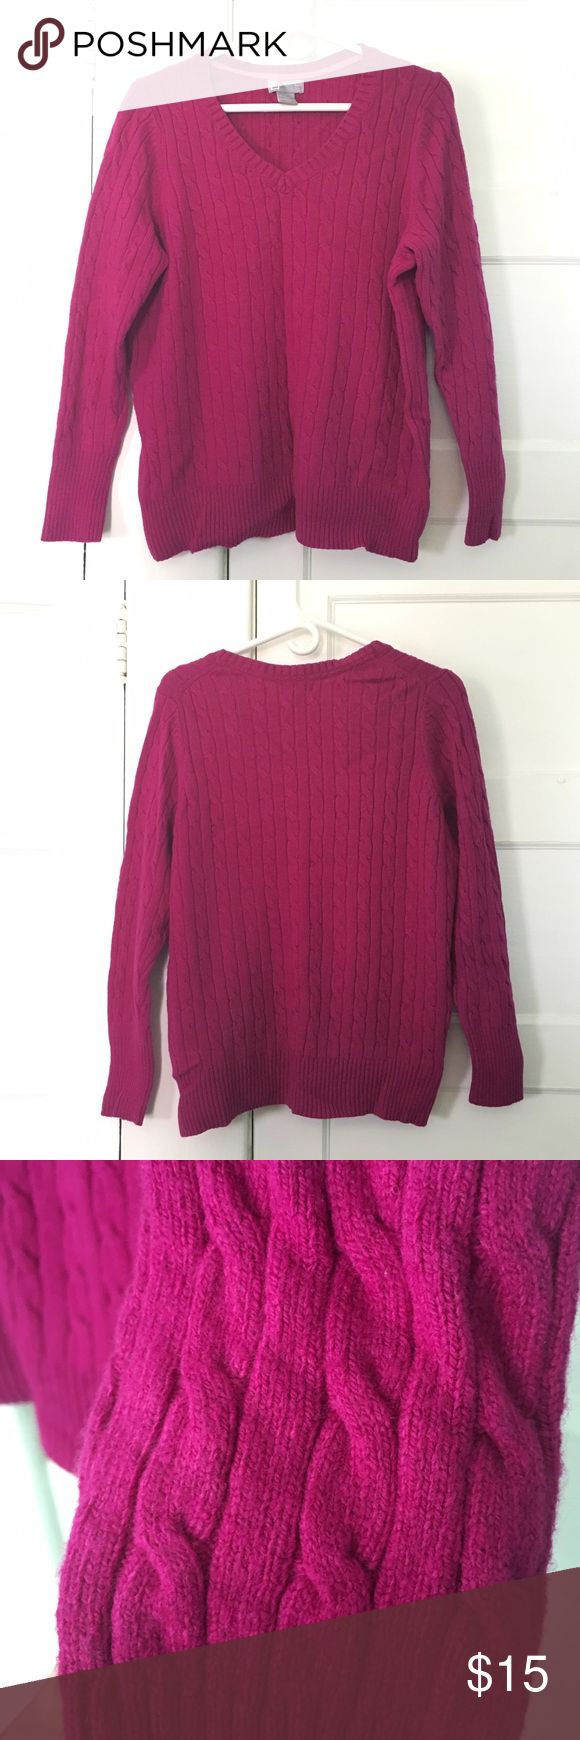 Pink Cable Knit Sweater Condition: EUC Brand: JCP Style: V-neck ...